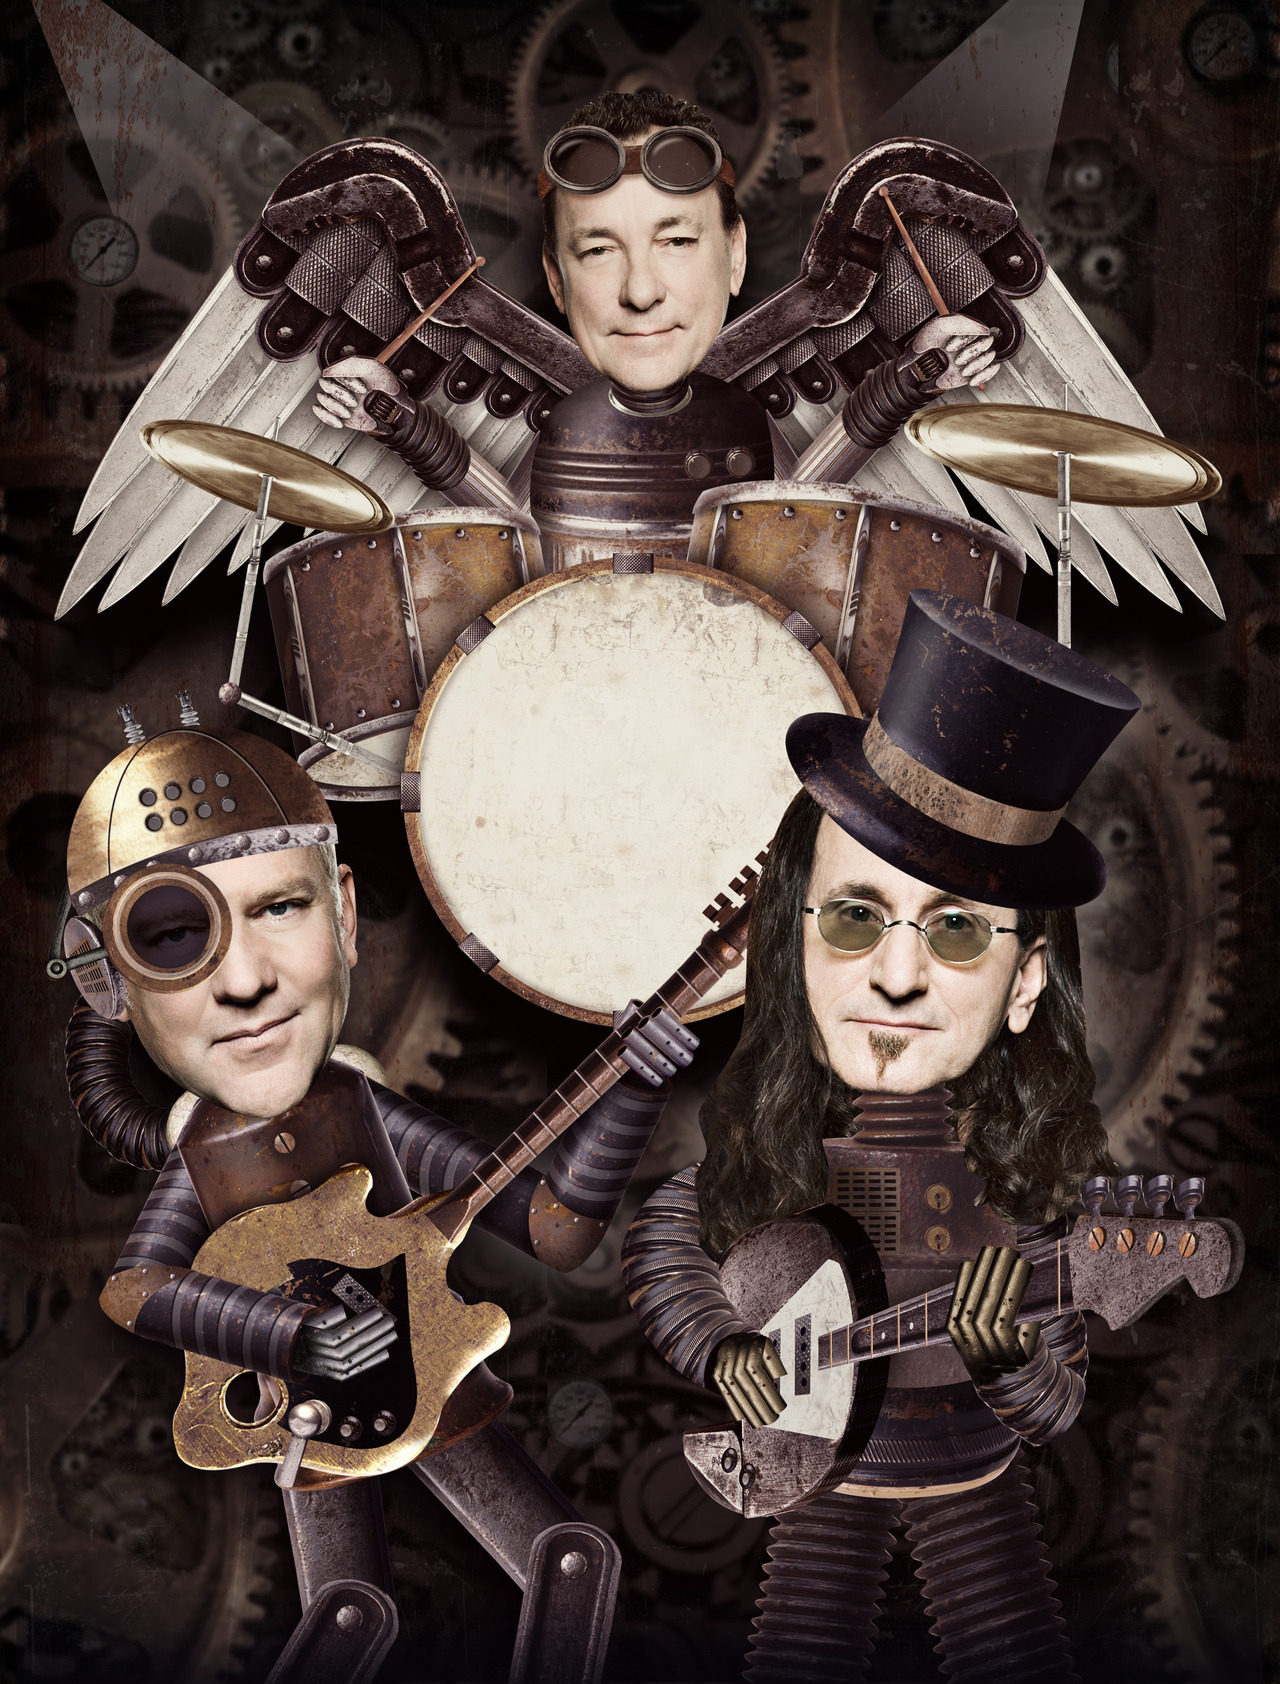 Illustration for Prog Magazine review of the latest Rush album. A SteamPunk fantasy.